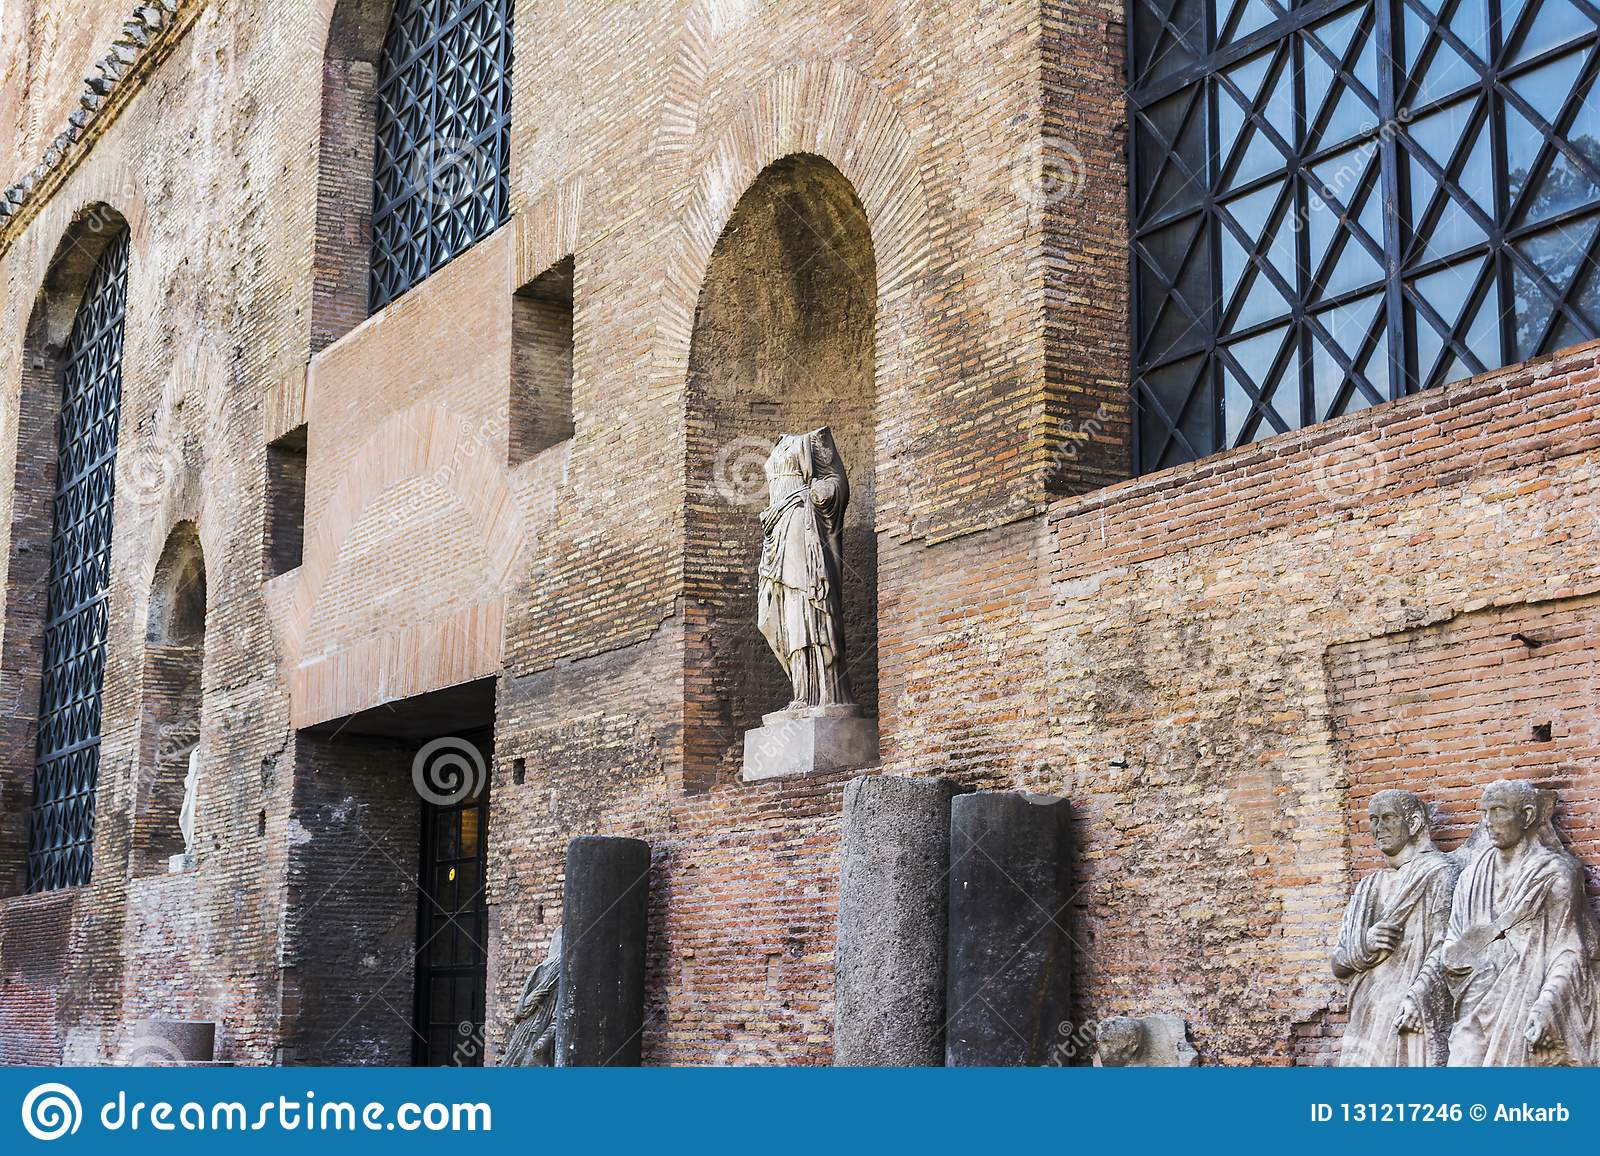 Ruins of the Baths of Diocletian, Rome, Italy. Diocletian`s baths is one of the main landmarks in Rome.